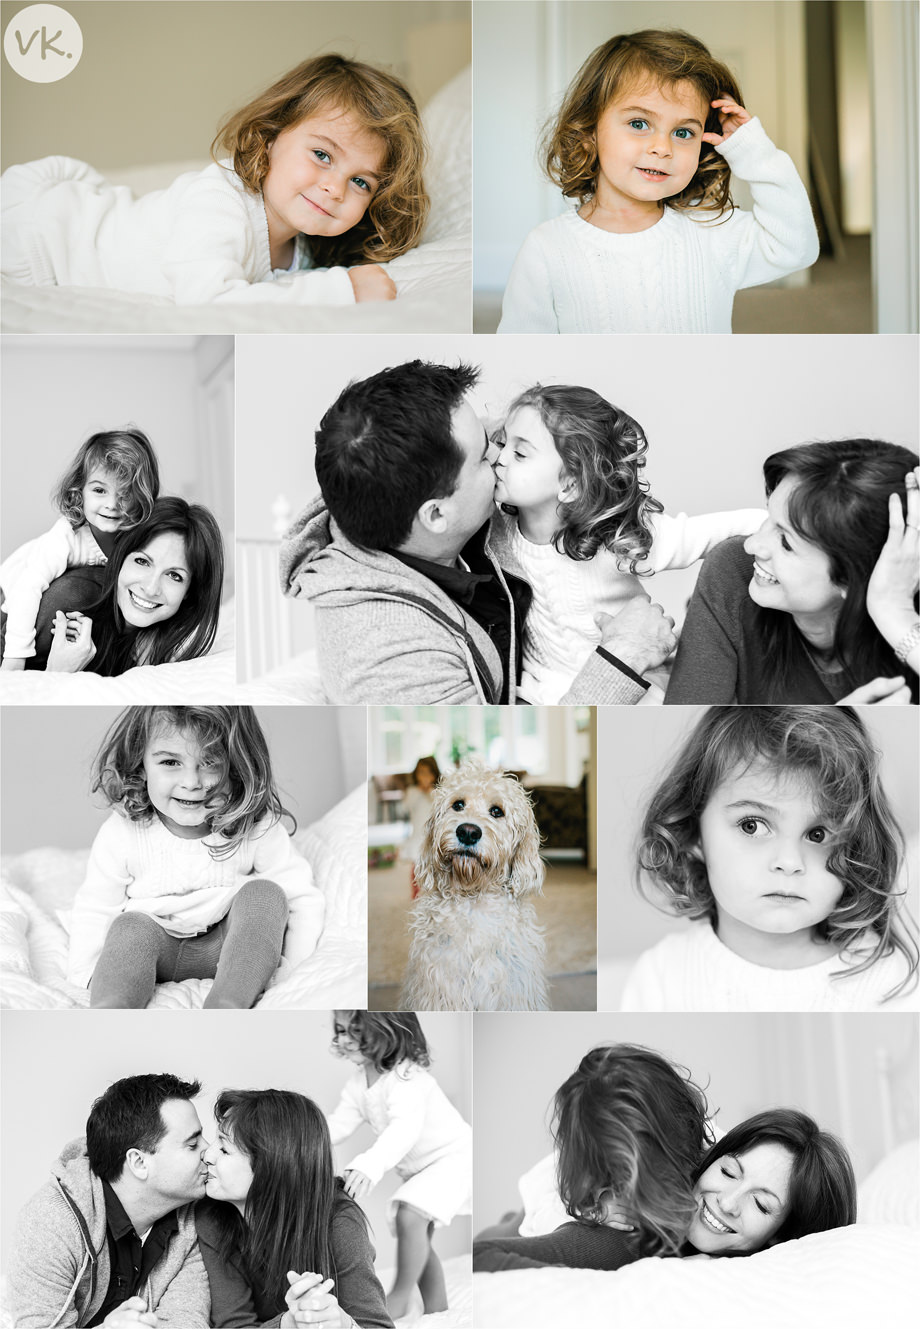 2012 Family Home Decorating Ideas: A Family Photo Shoot At Home In Esher